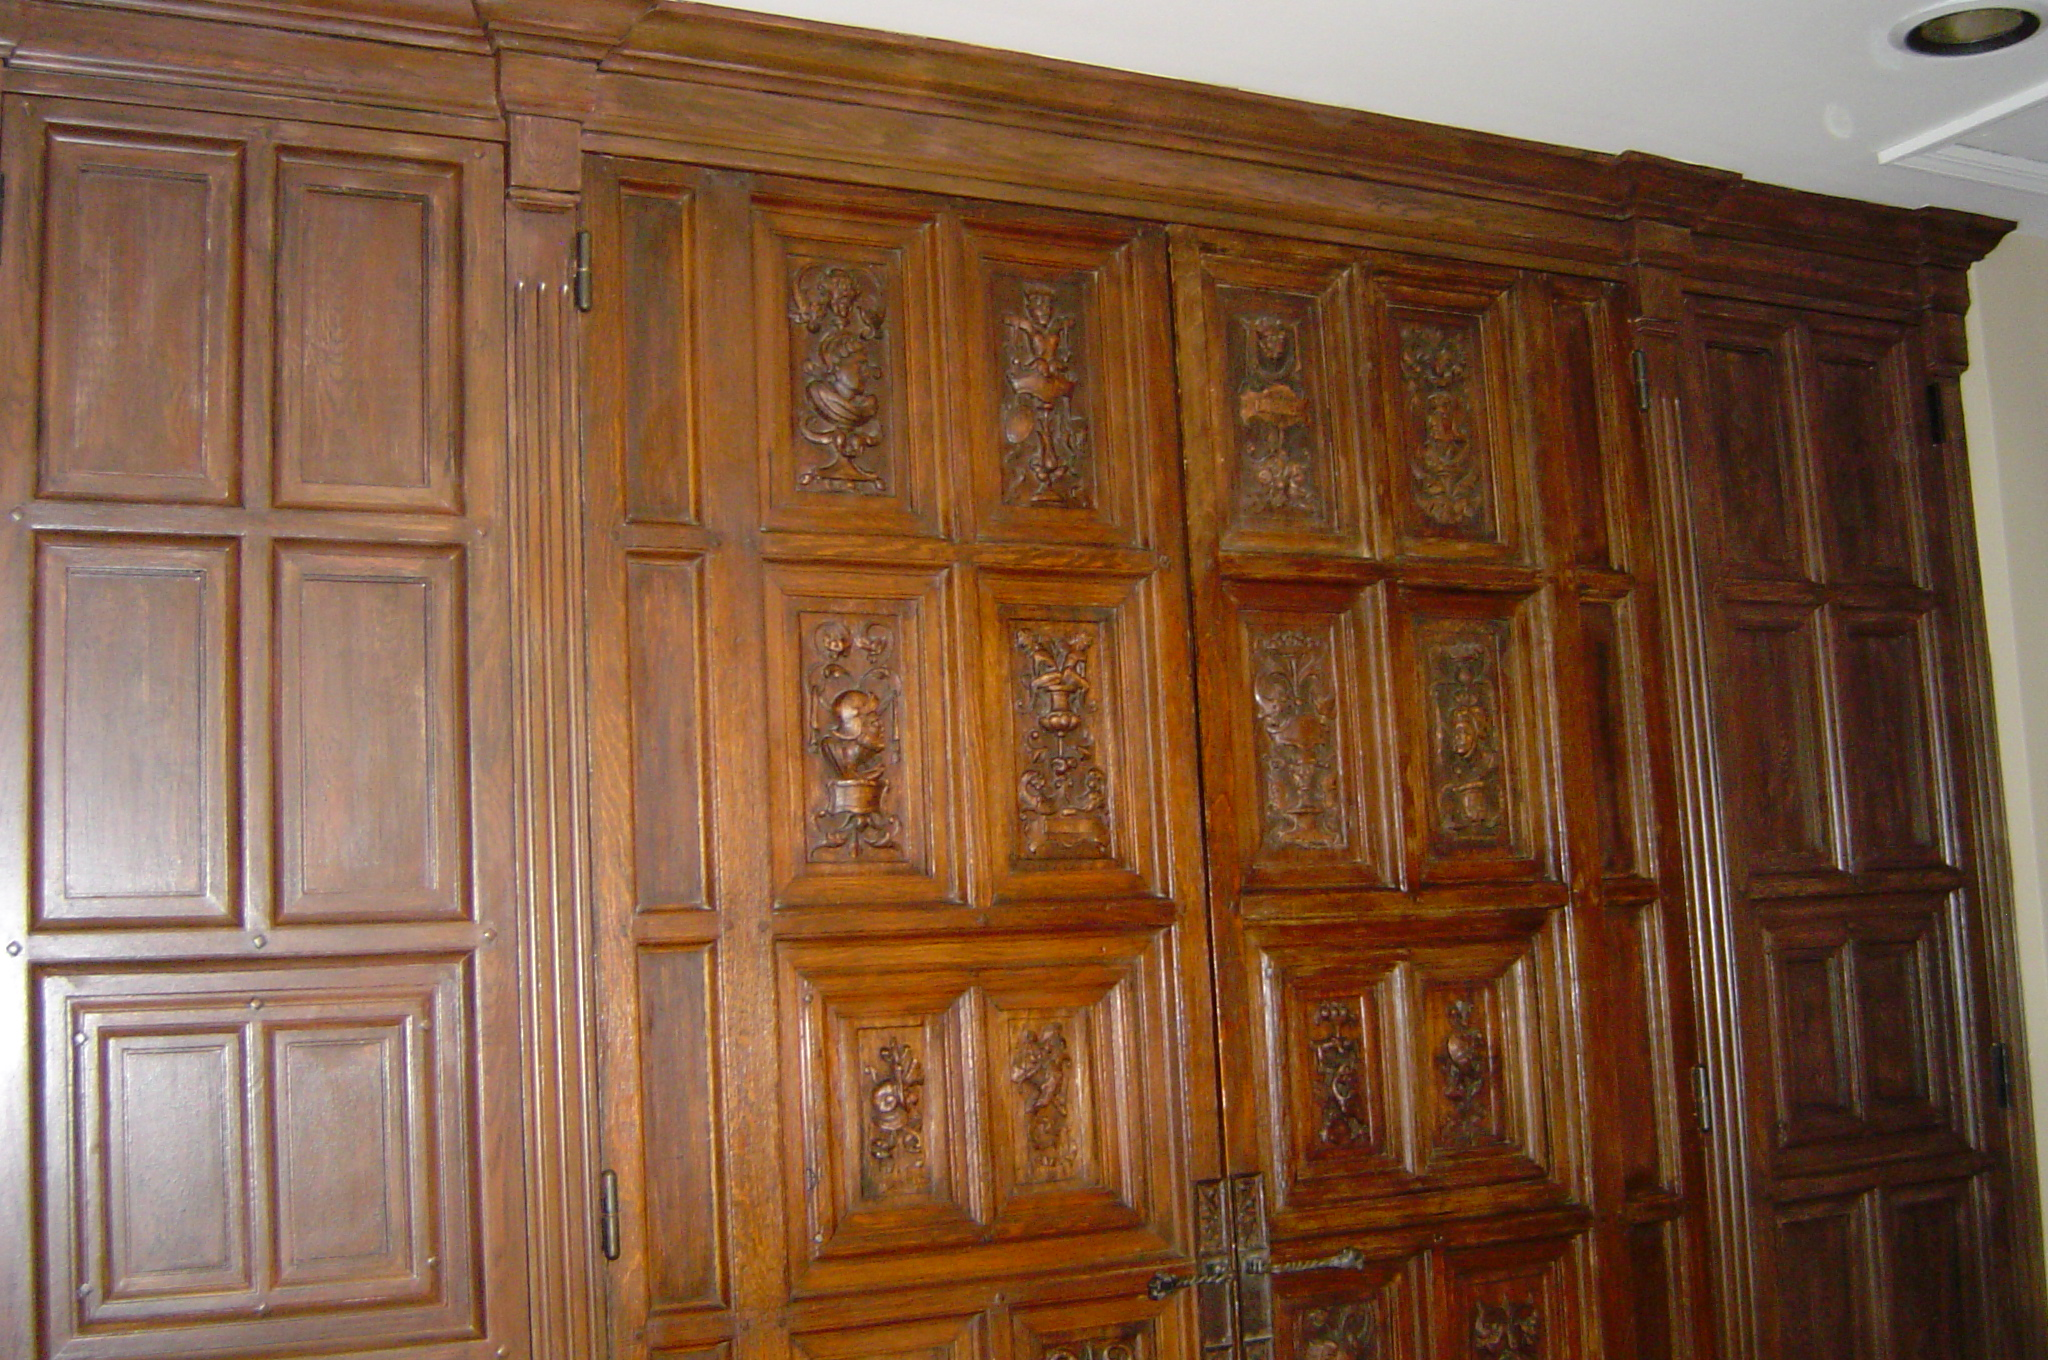 Can You Paint Faux Wood Blinds Part - 50: Newly Constructed Architectural Trim And Door Panels Painted With A Faux  Wood-grain To Replicate